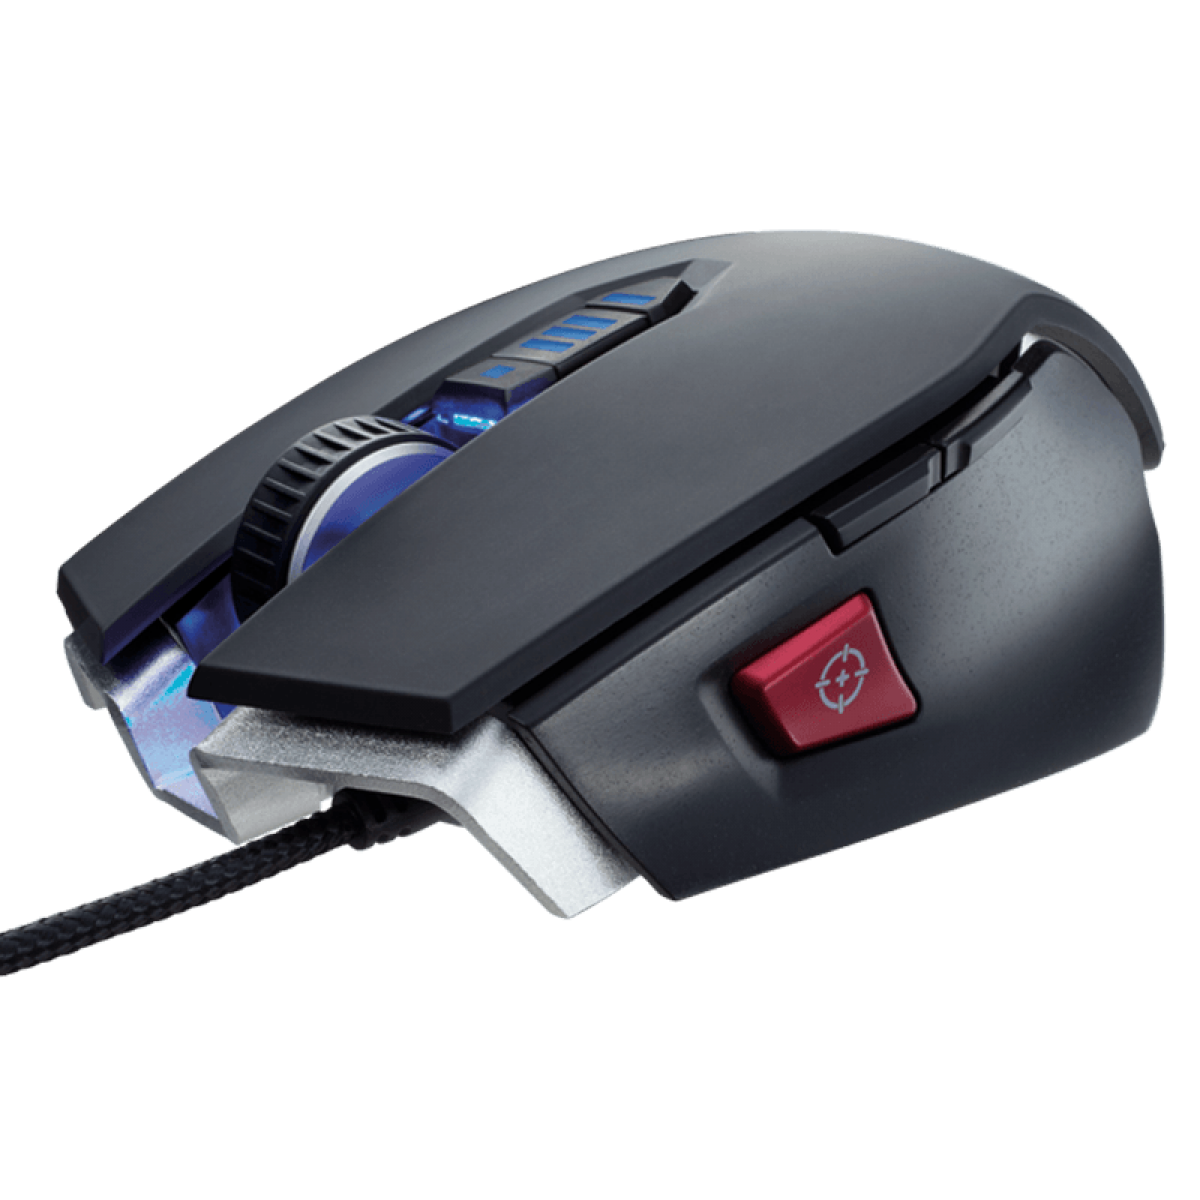 Mouse Corsair Vengeance M65 FPS Laser Gaming Mouse 8200dpi  - USB